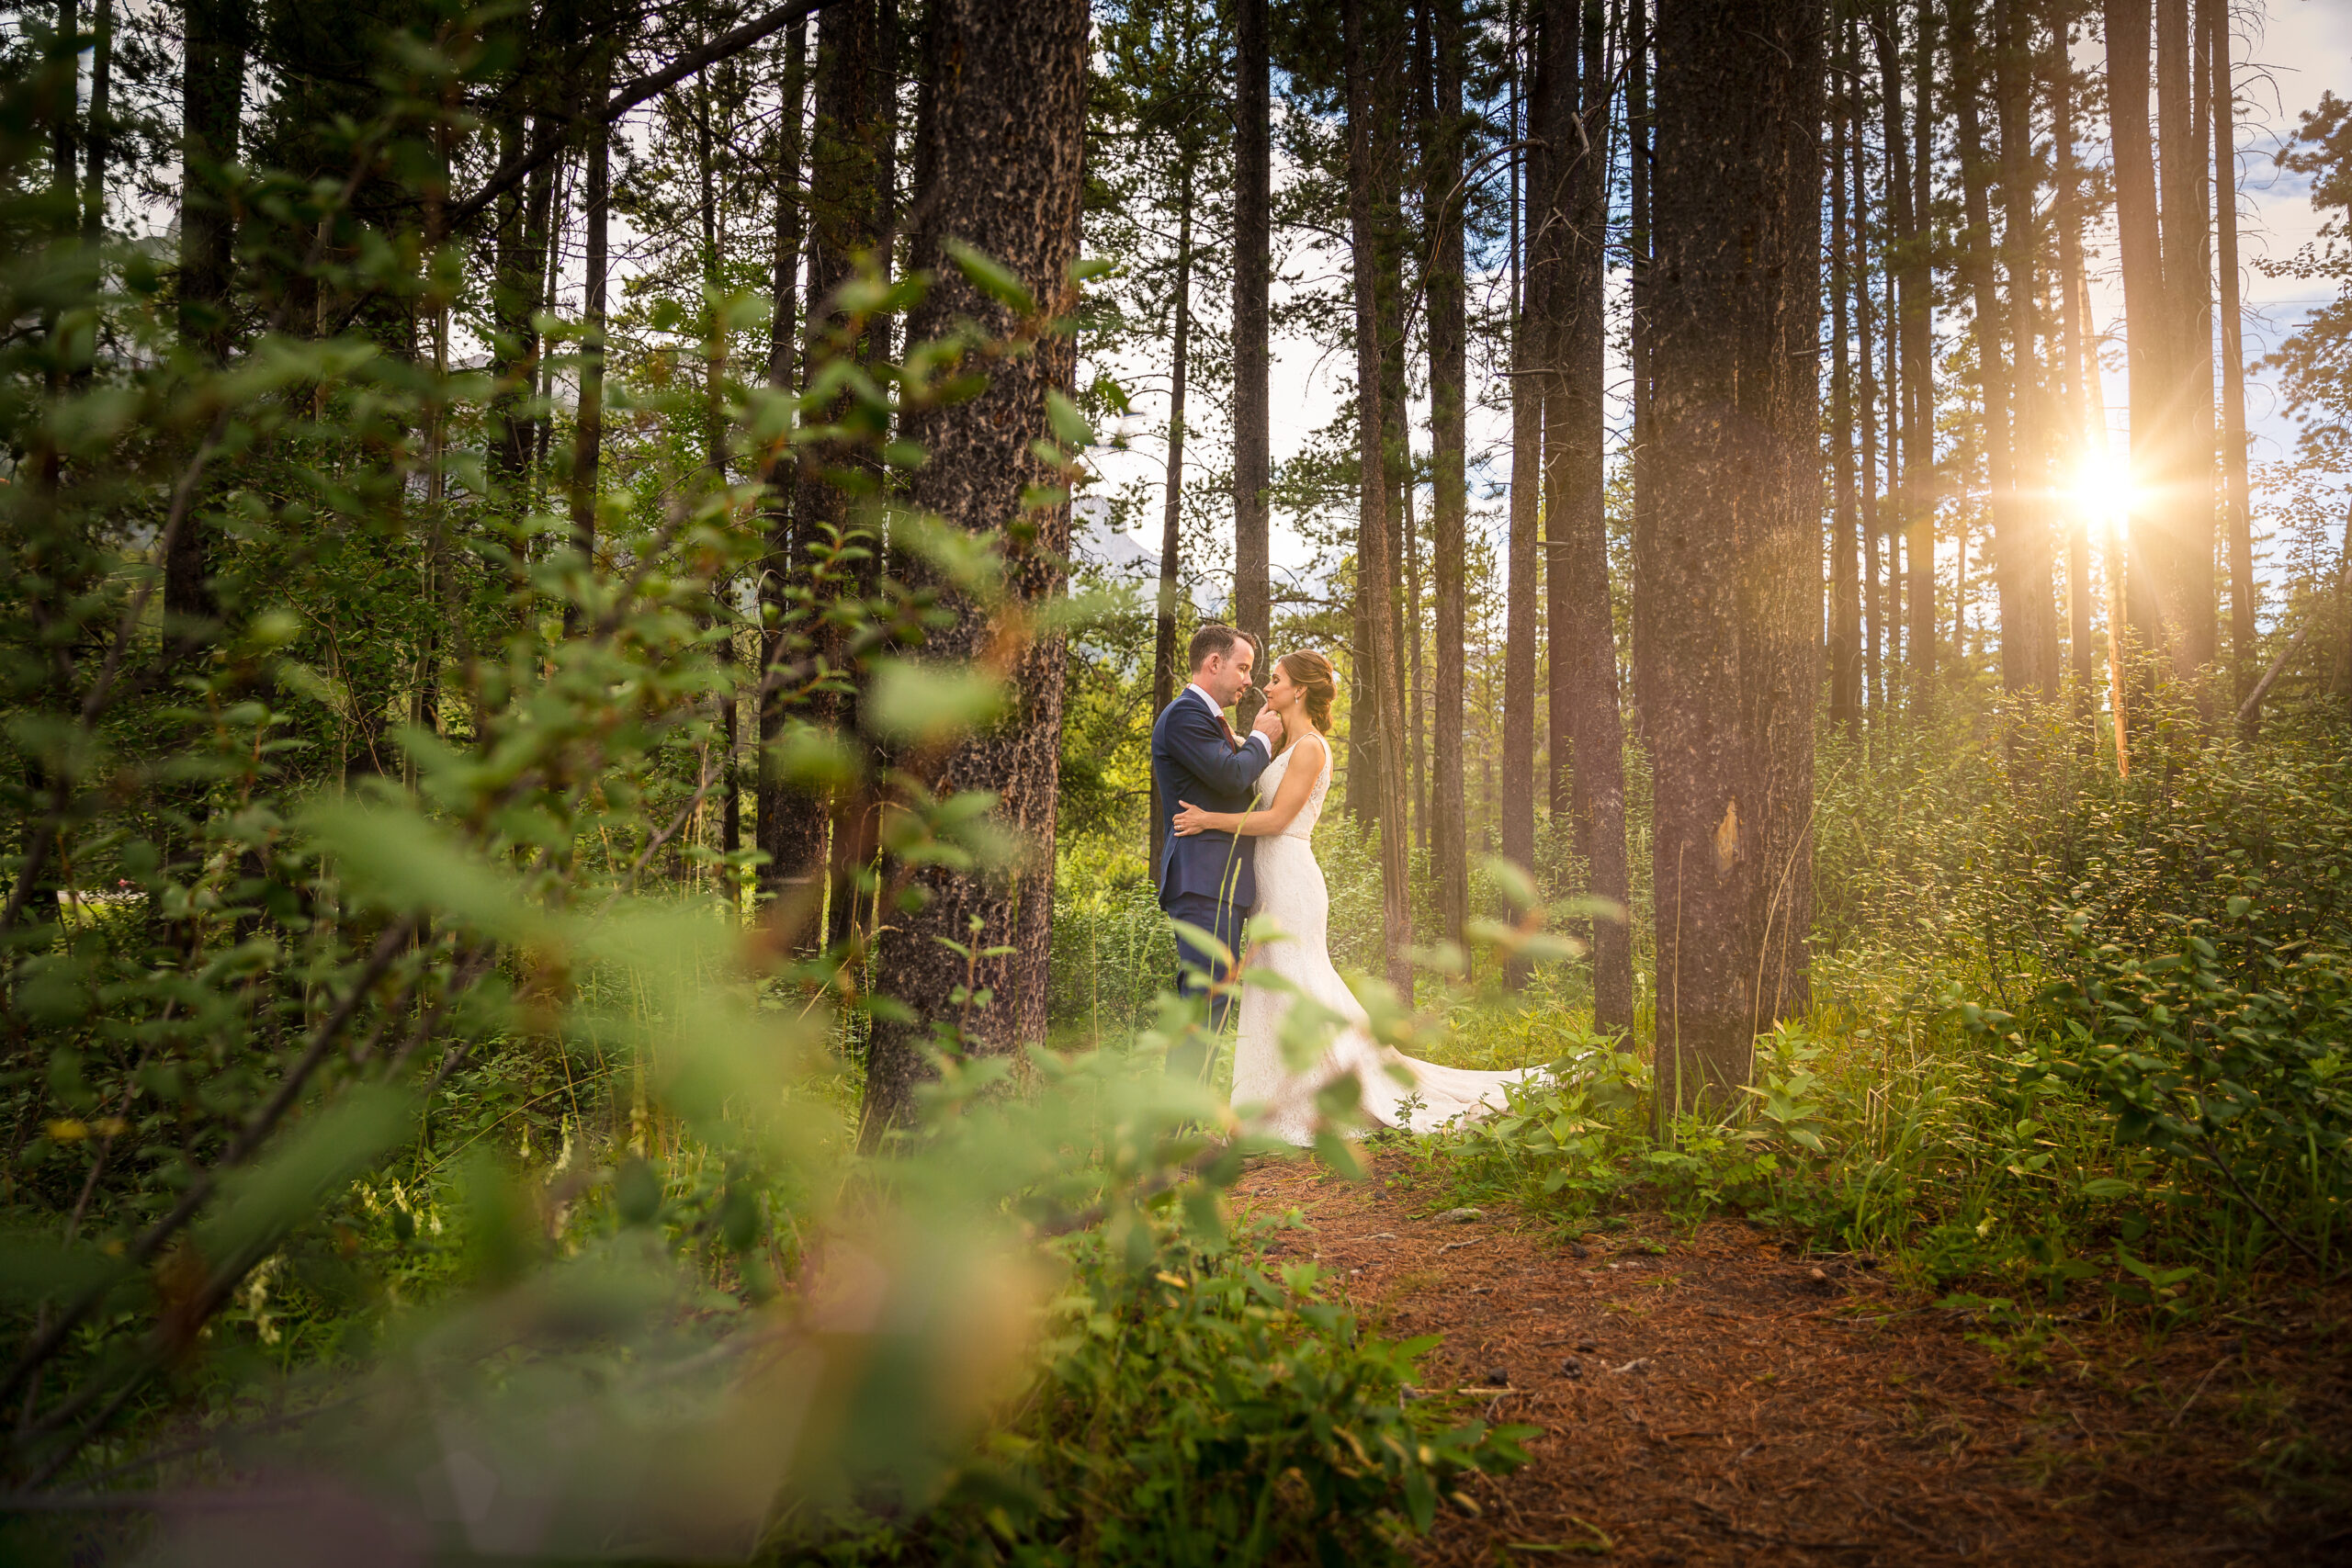 Wedding Photography Investment - Calgary Wedding Photographers